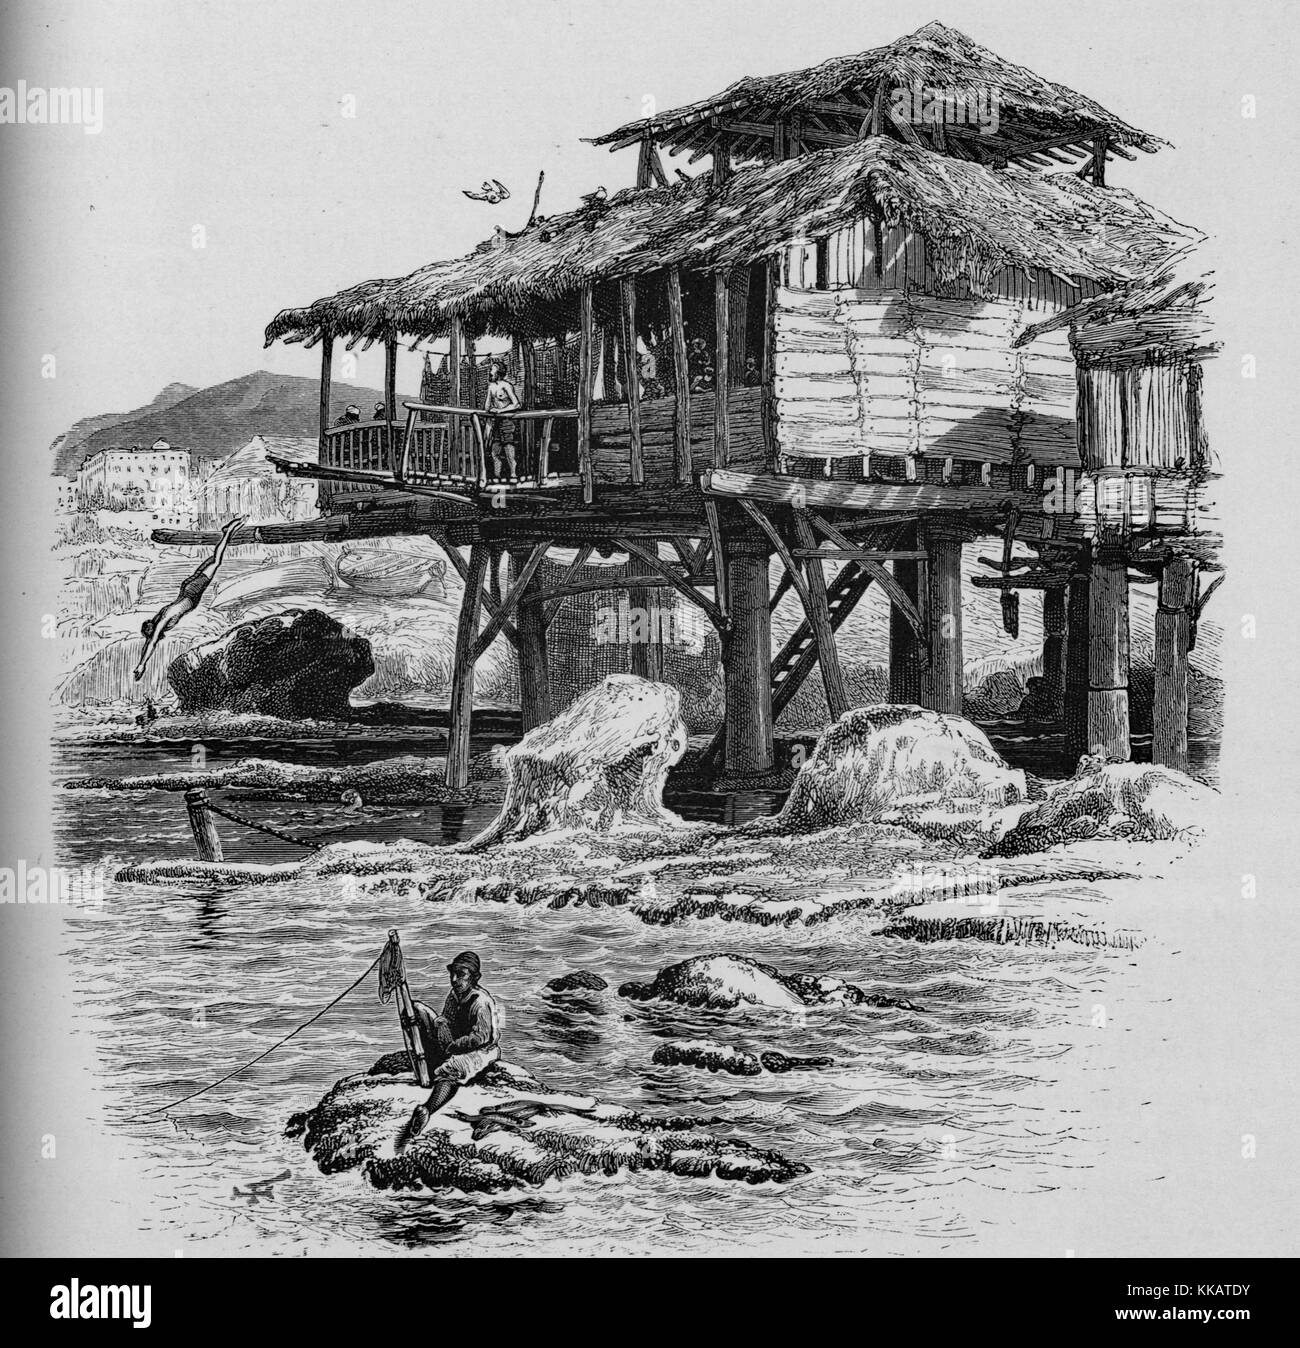 An etching depicting life in Beirut, a man can be seen diving from a wood and thatch structure that has been built - Stock Image